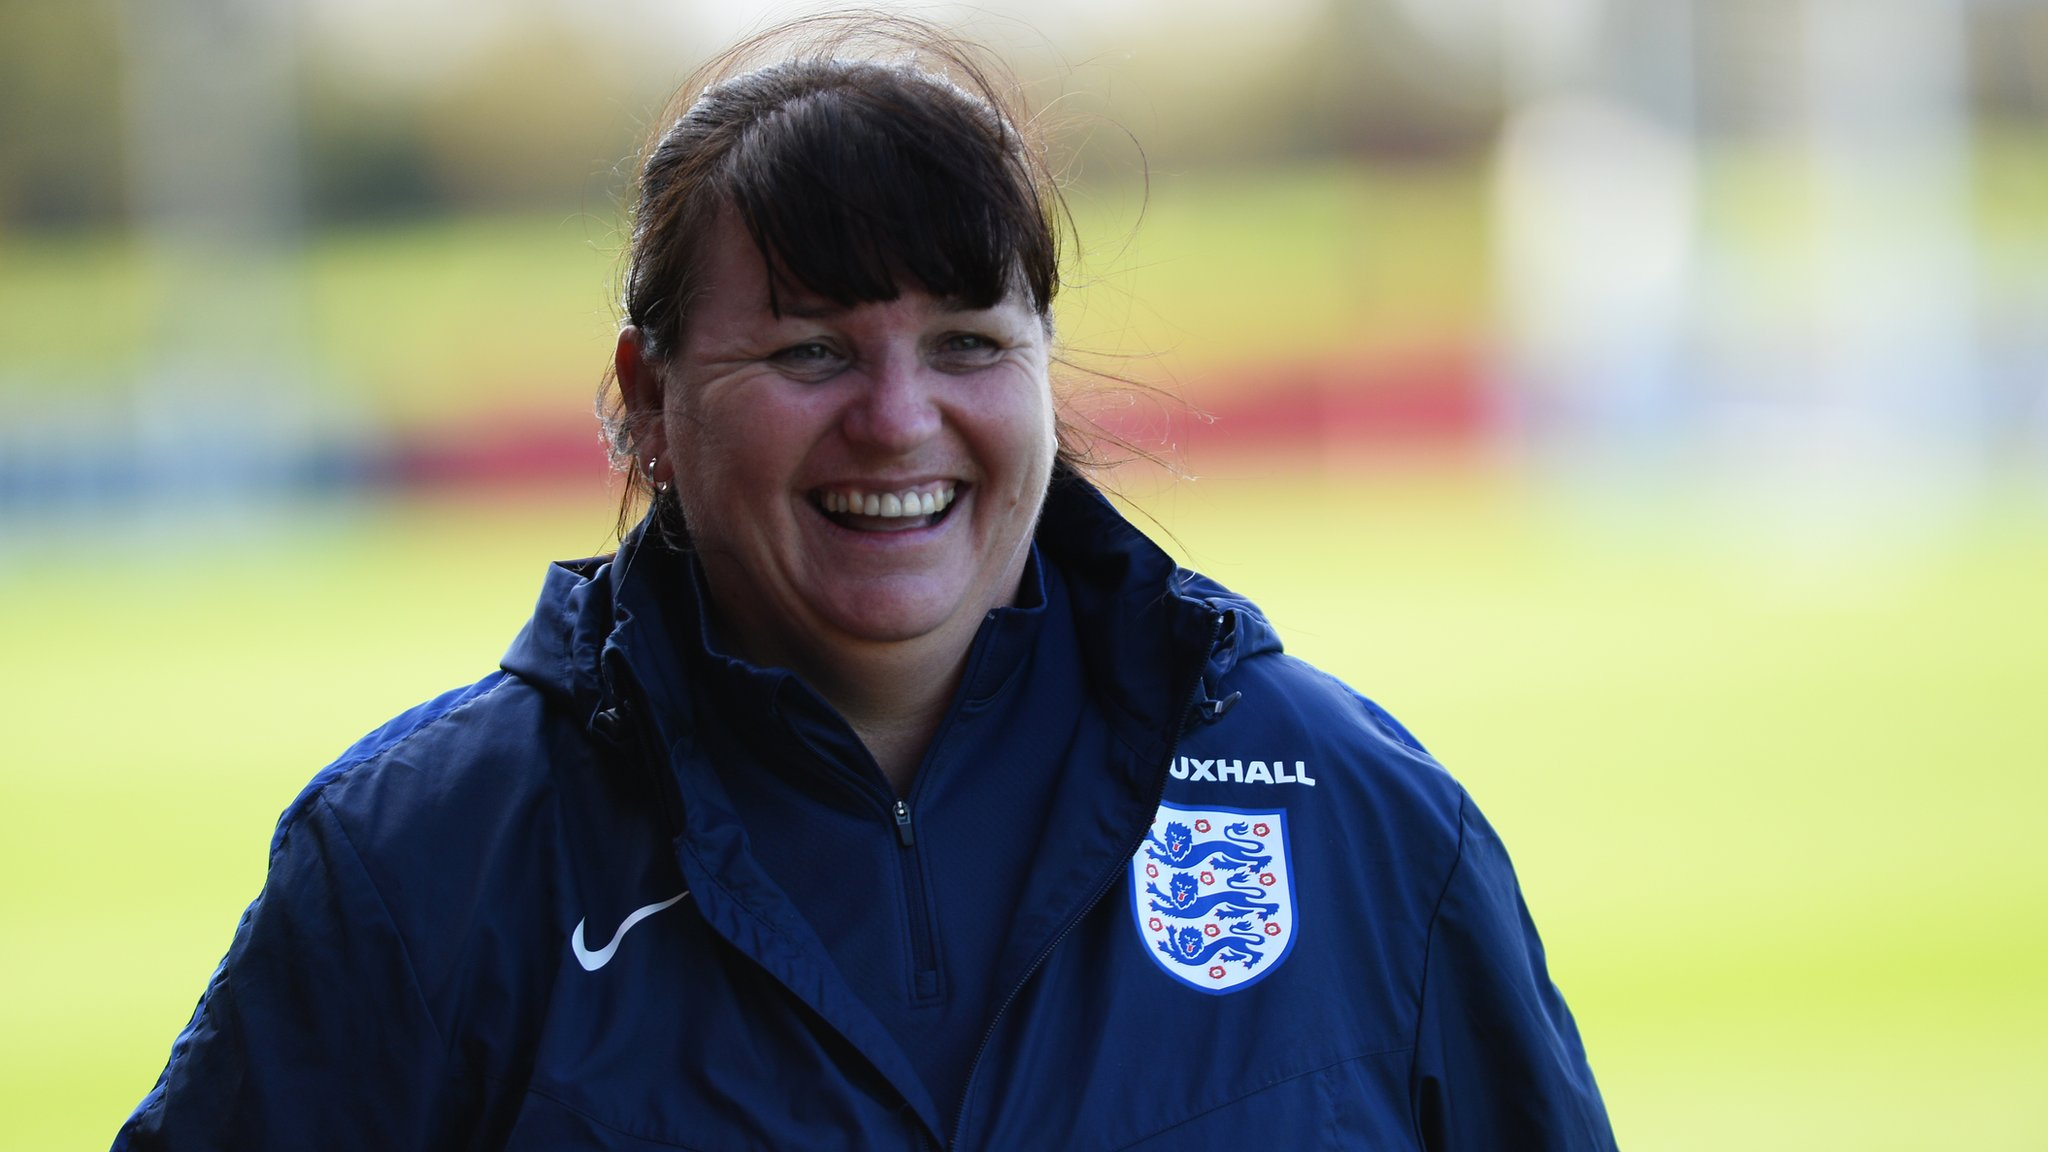 'No players ruled out' of England set-up - Marley